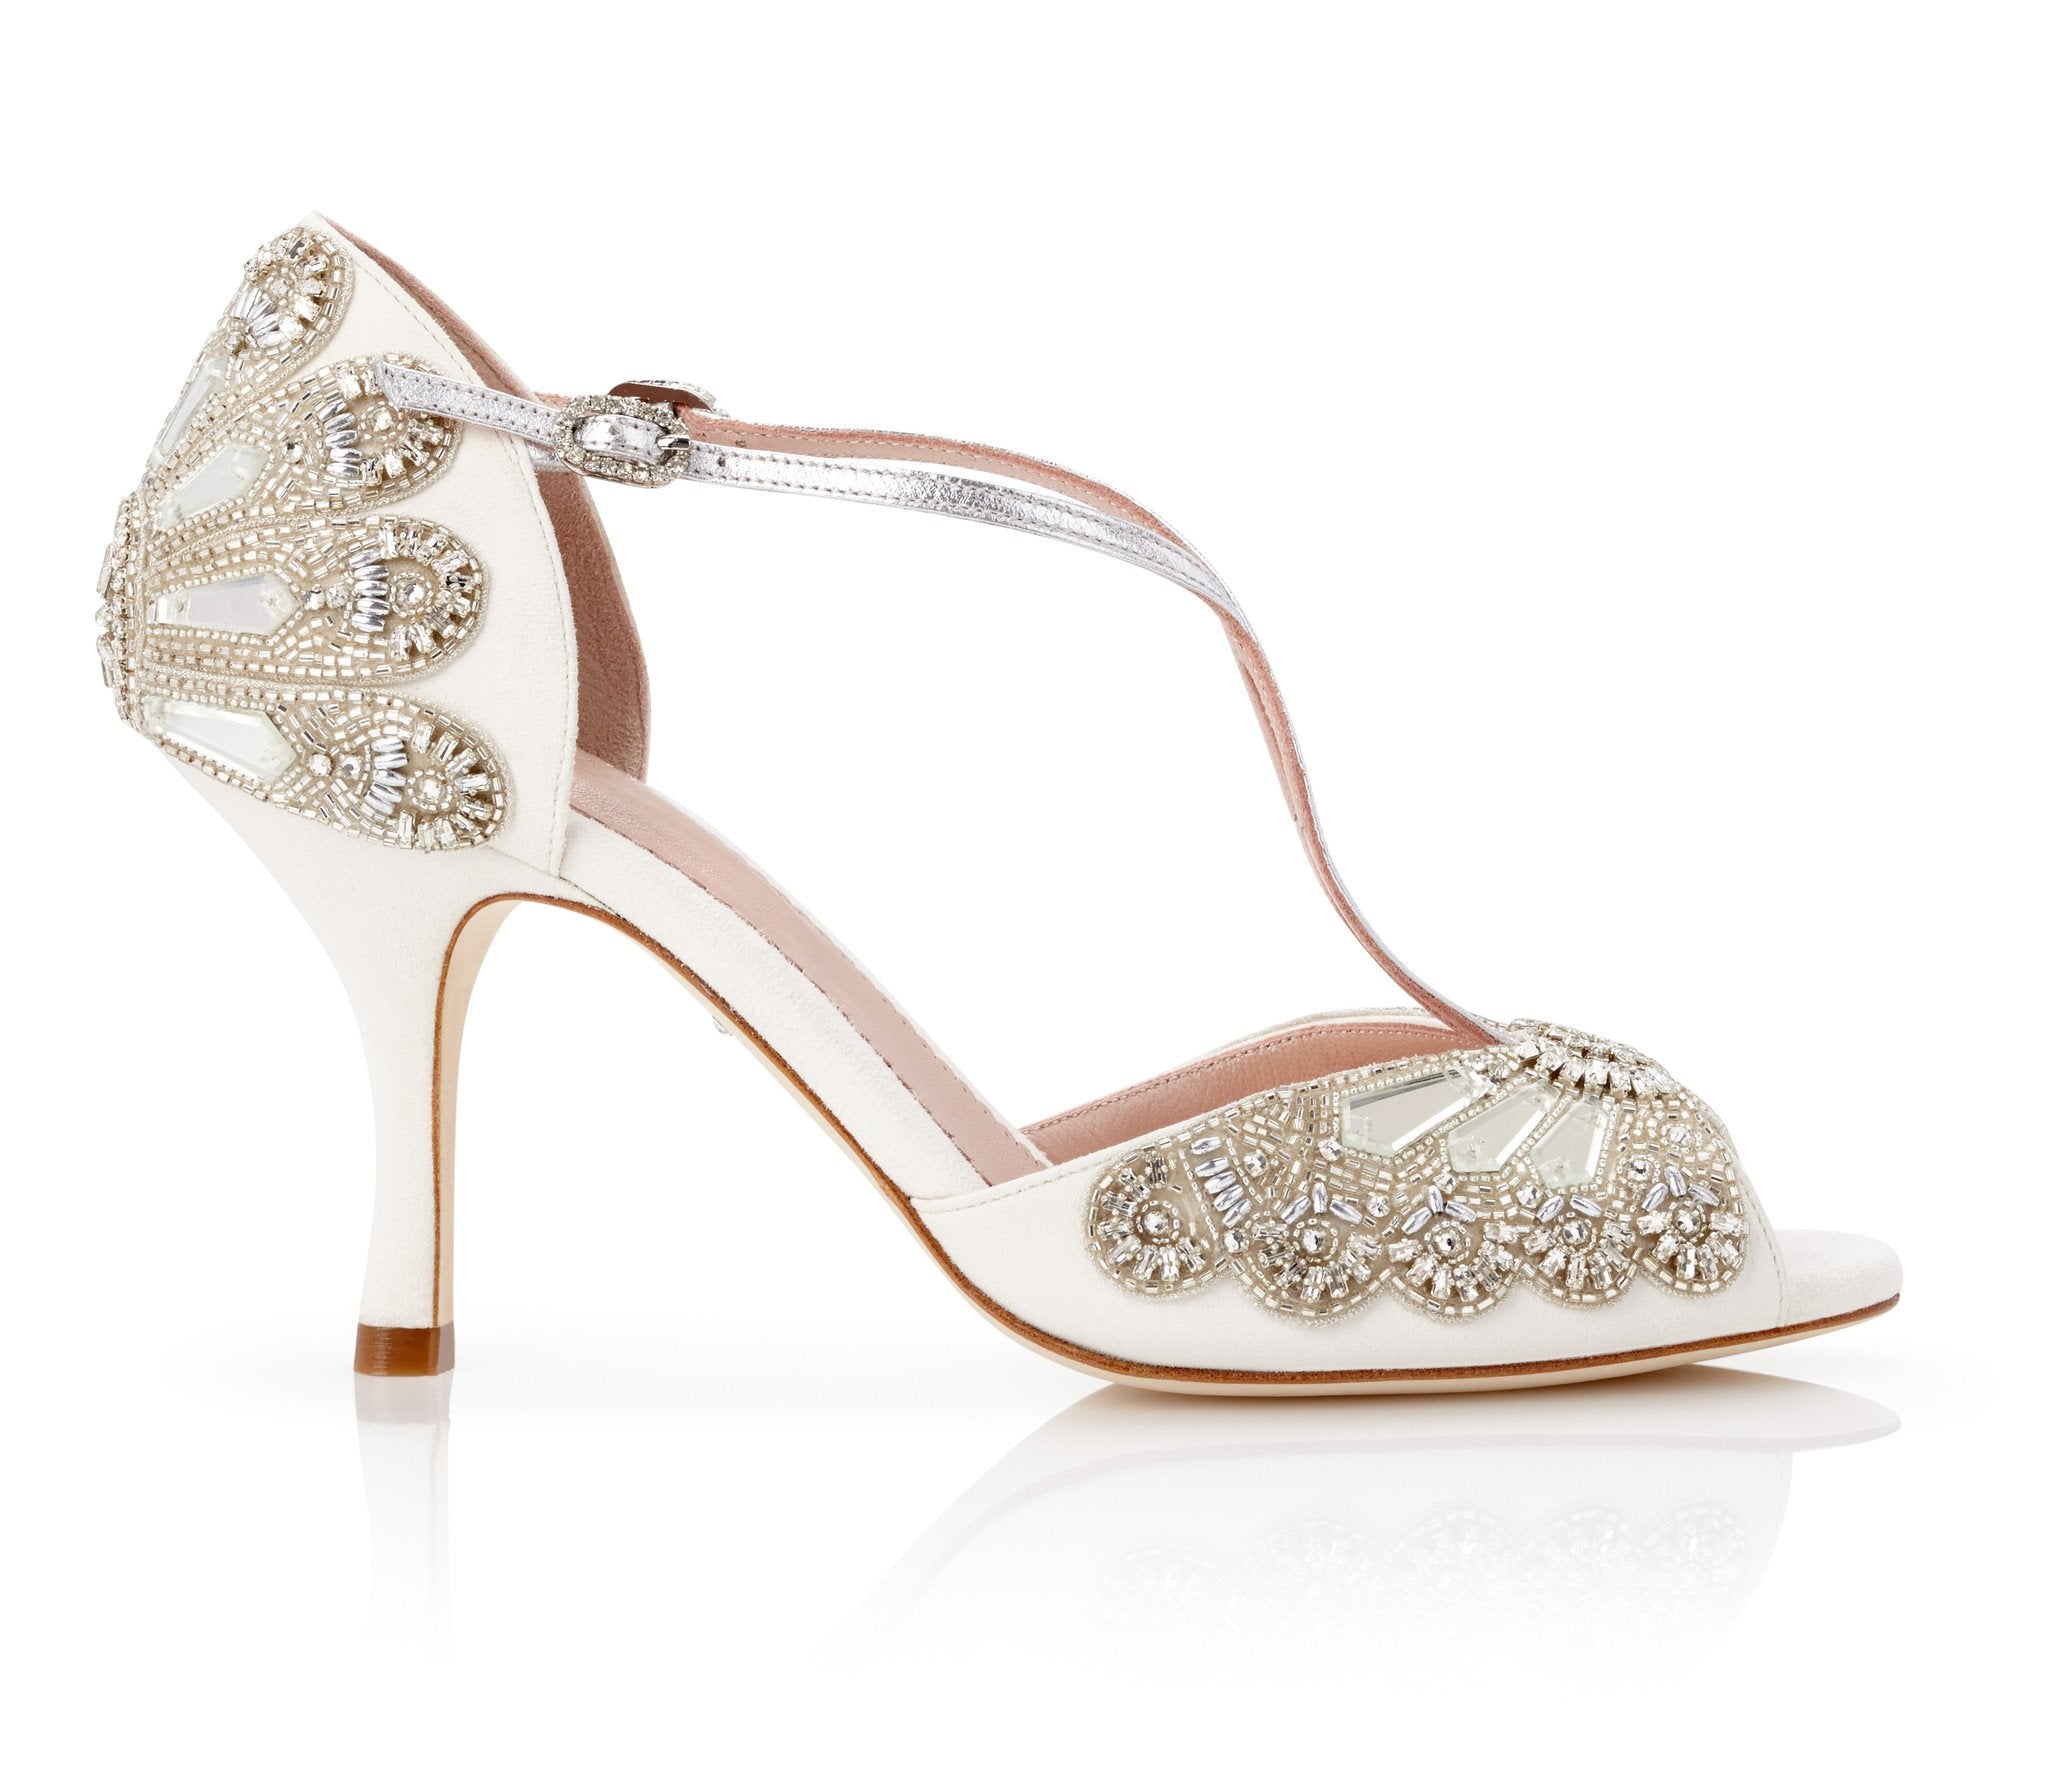 Cinderella_Mid_Heel_Bridal_Shoe_Emmy_London_Embellished_Silver_T-Bar